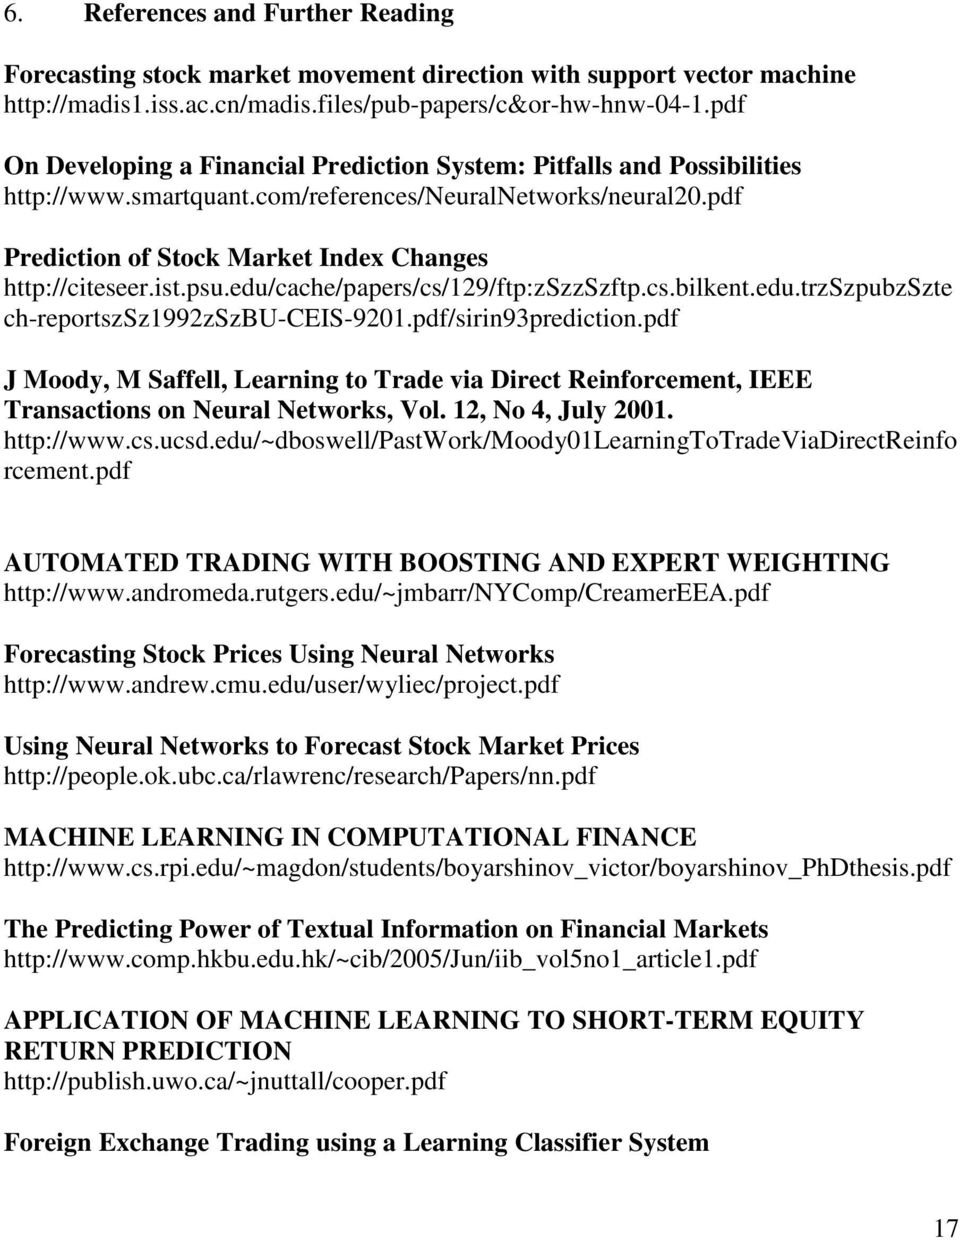 Machine Learning Techniques for Stock Prediction  Vatsal H  Shah - PDF